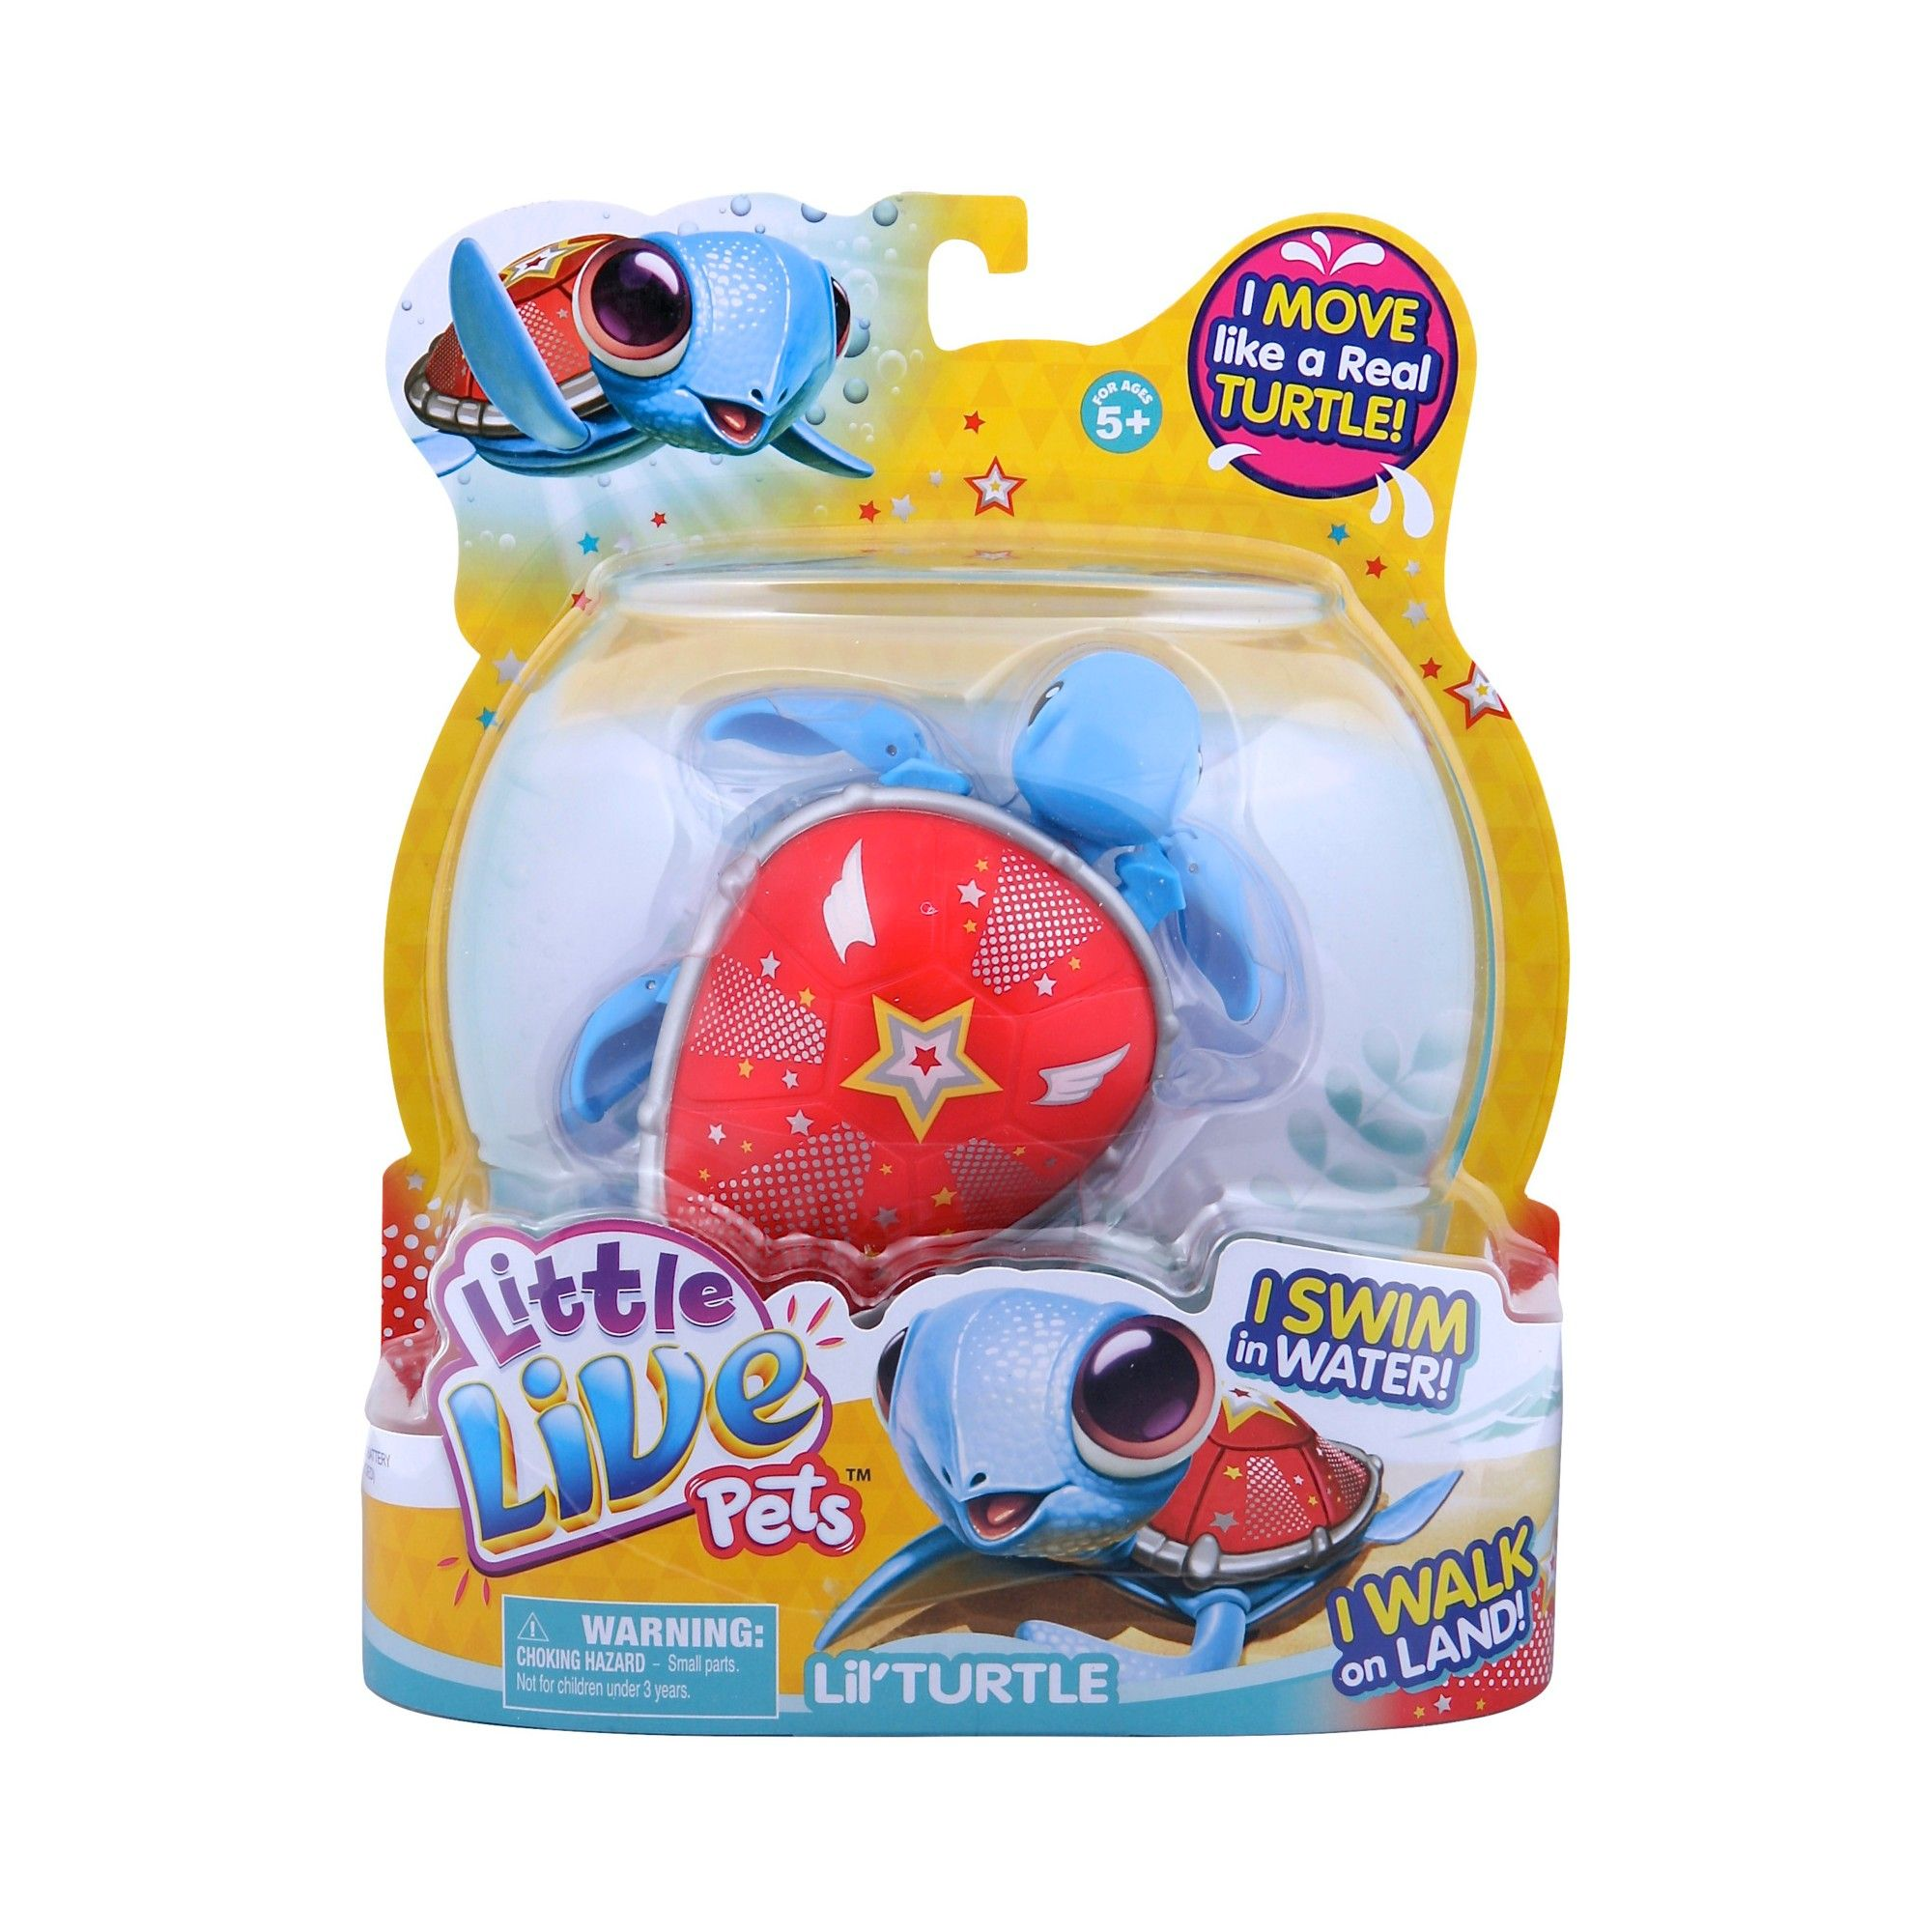 Little Live Pets Lil' Turtle Super Star Little live